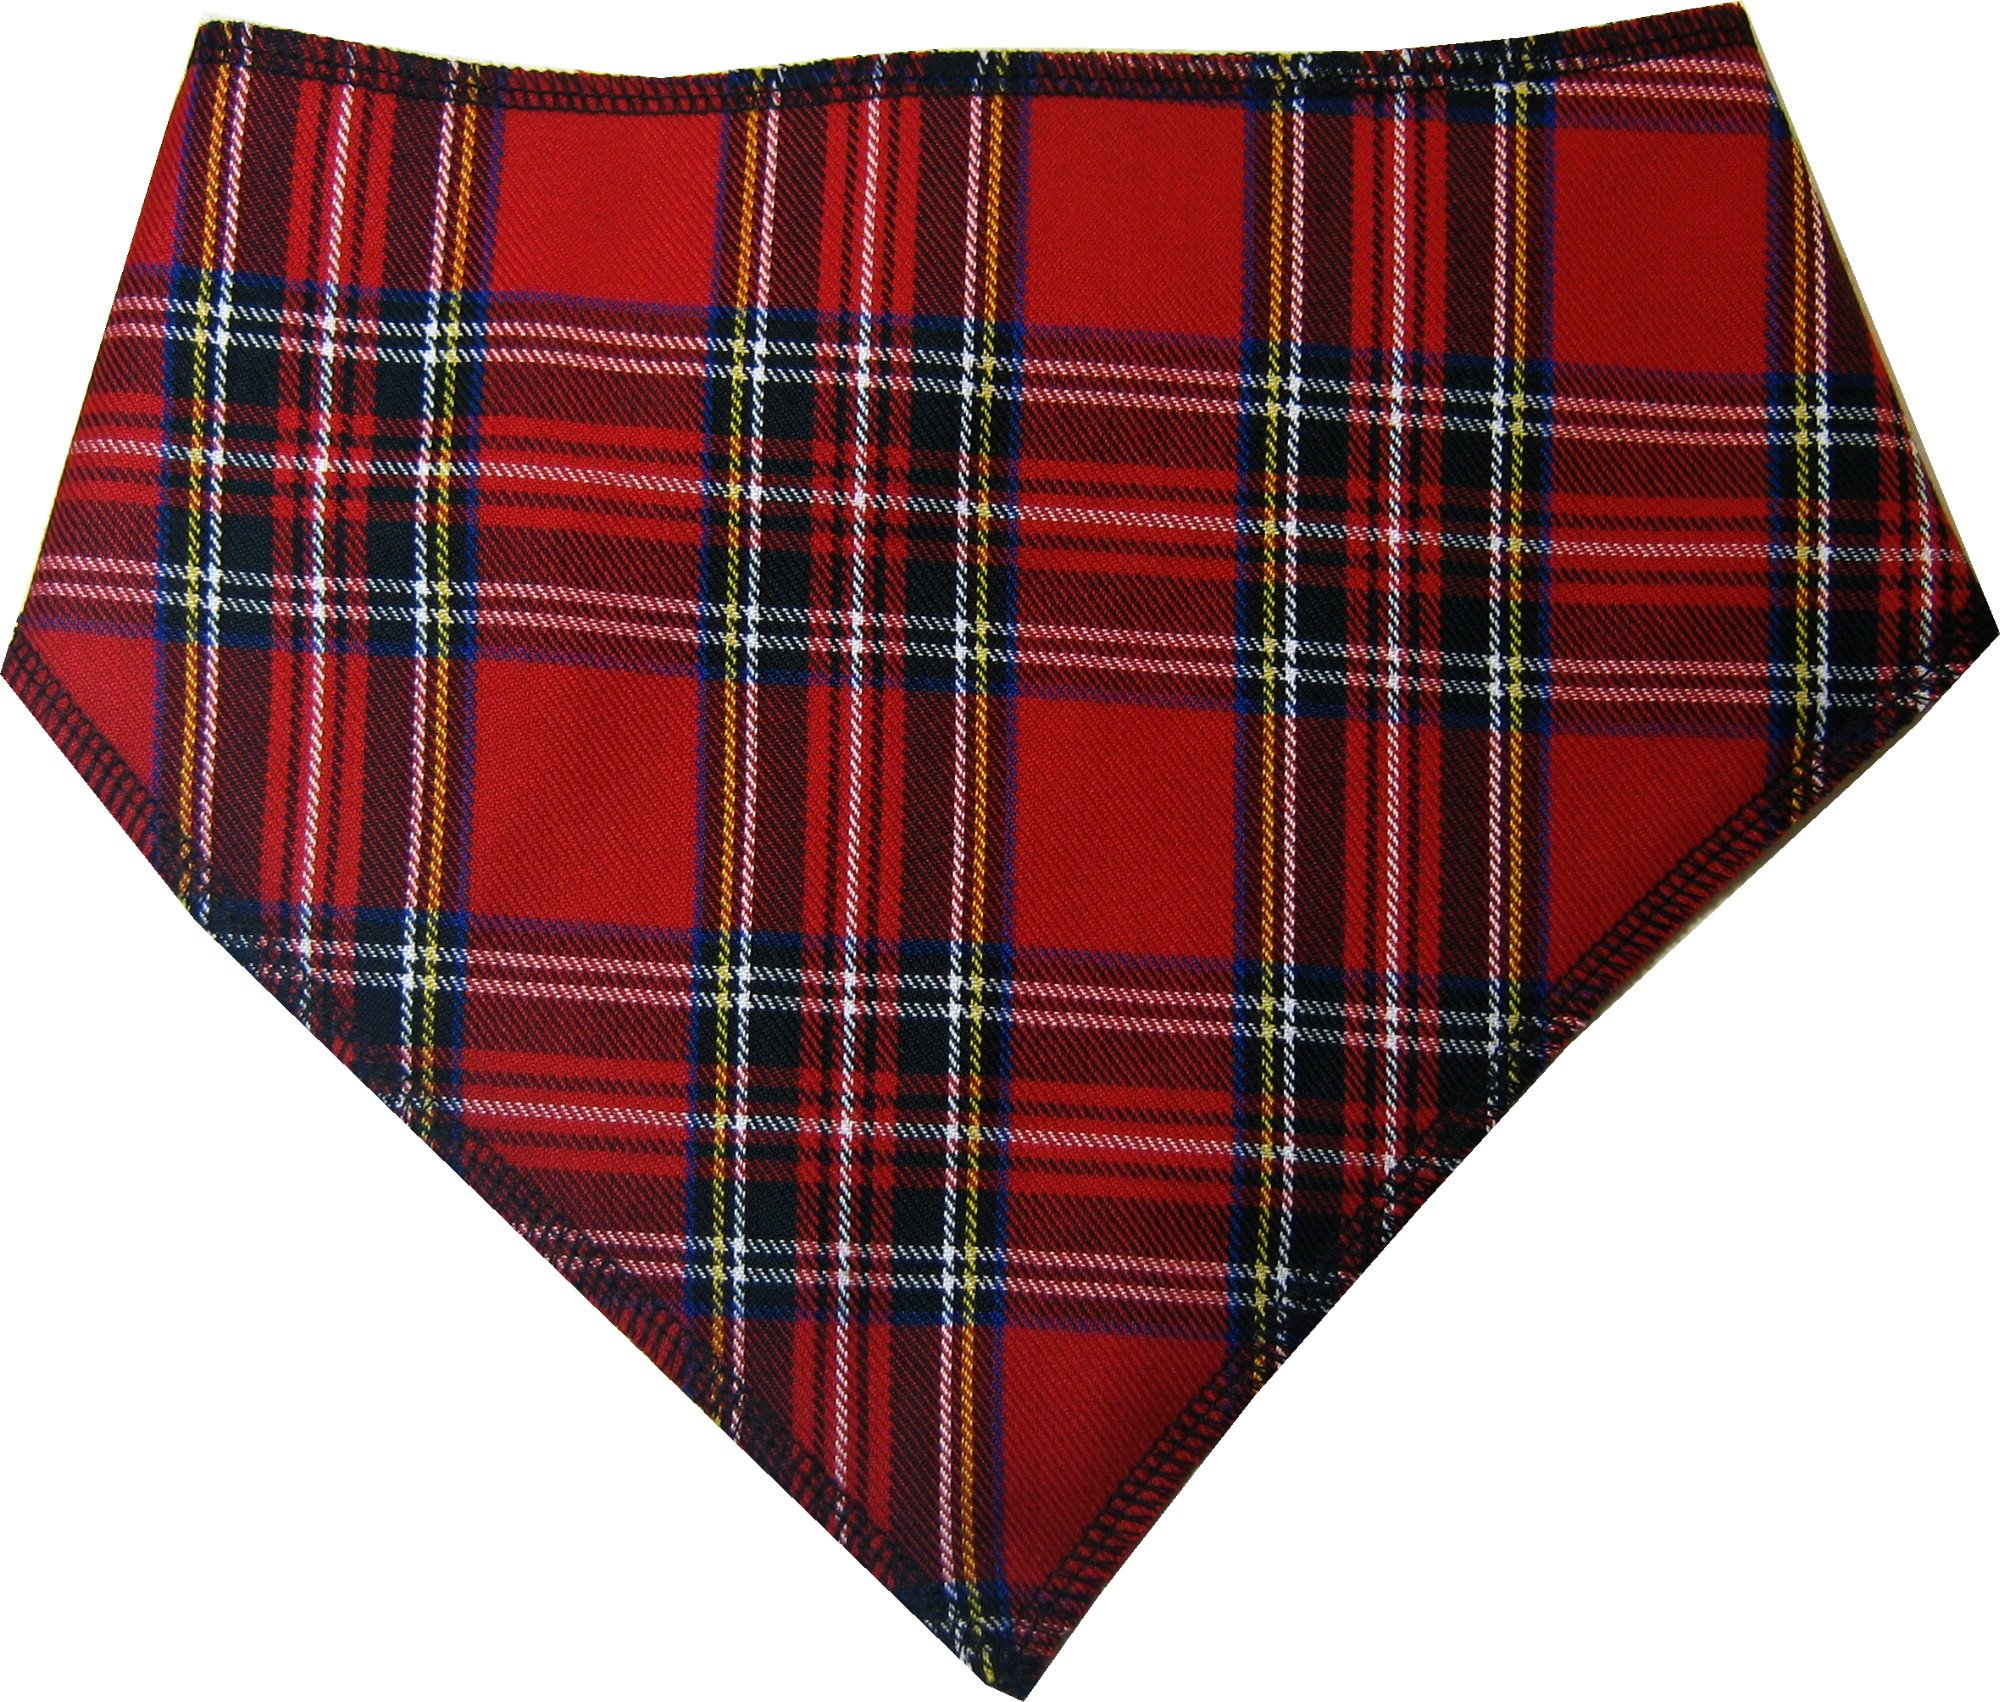 Spoilt Rotten Pets (S4 RED Royal Stewart TARTAN Dog Bandana. Extra Large Size Generally Fits Rottweilers and St Bernard Sized Dogs. Neck Size 23″ to 28″ Gorgeous Range of Patterns & Colour.